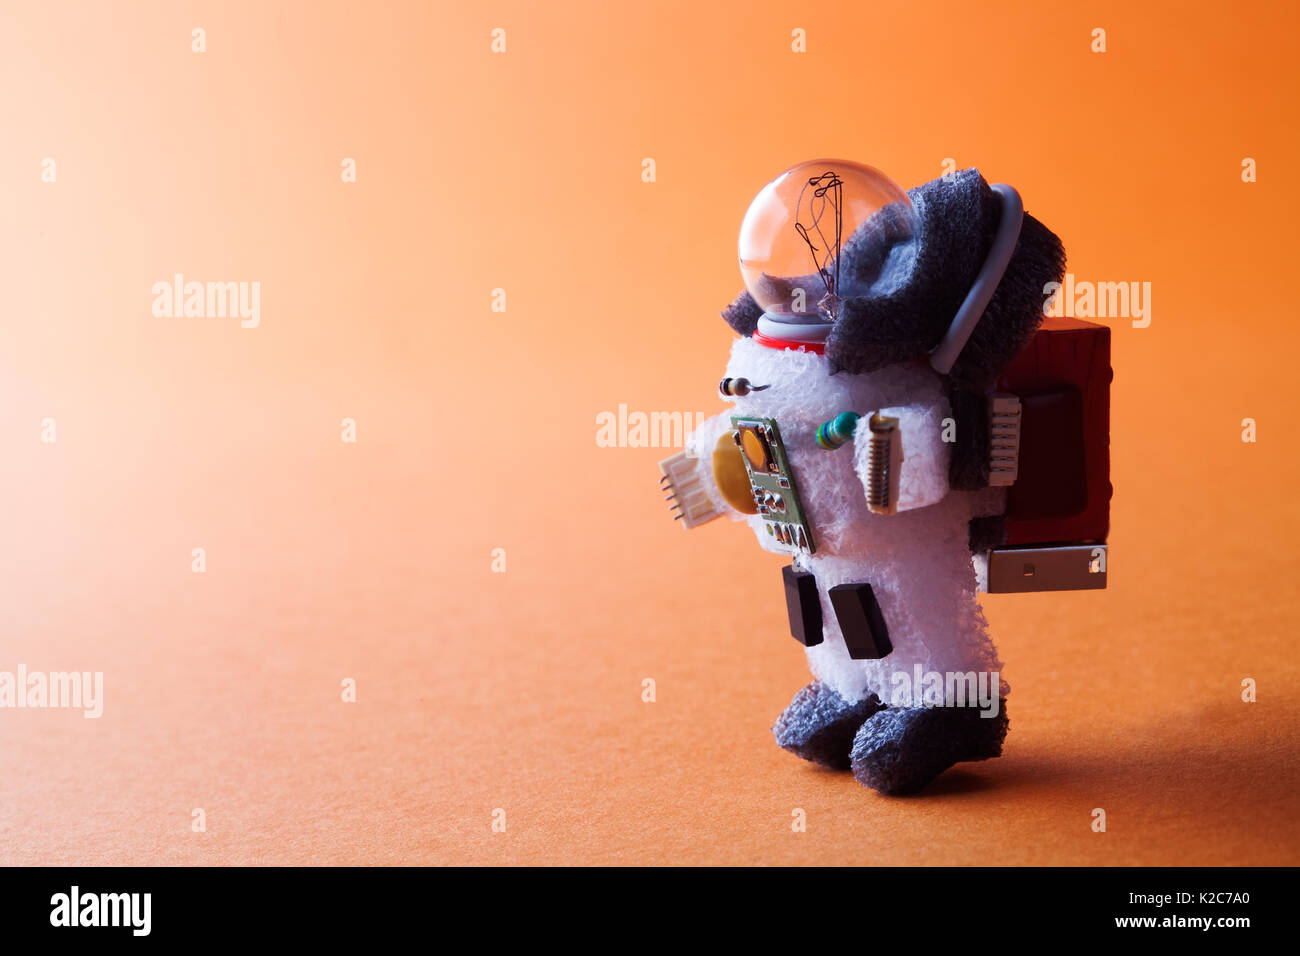 Spaceman light bulb character dressed in spacesuit and astronaut ammunition. Cosmonaut walking abstract orange planet background. creative cosmos concept. copy space - Stock Image